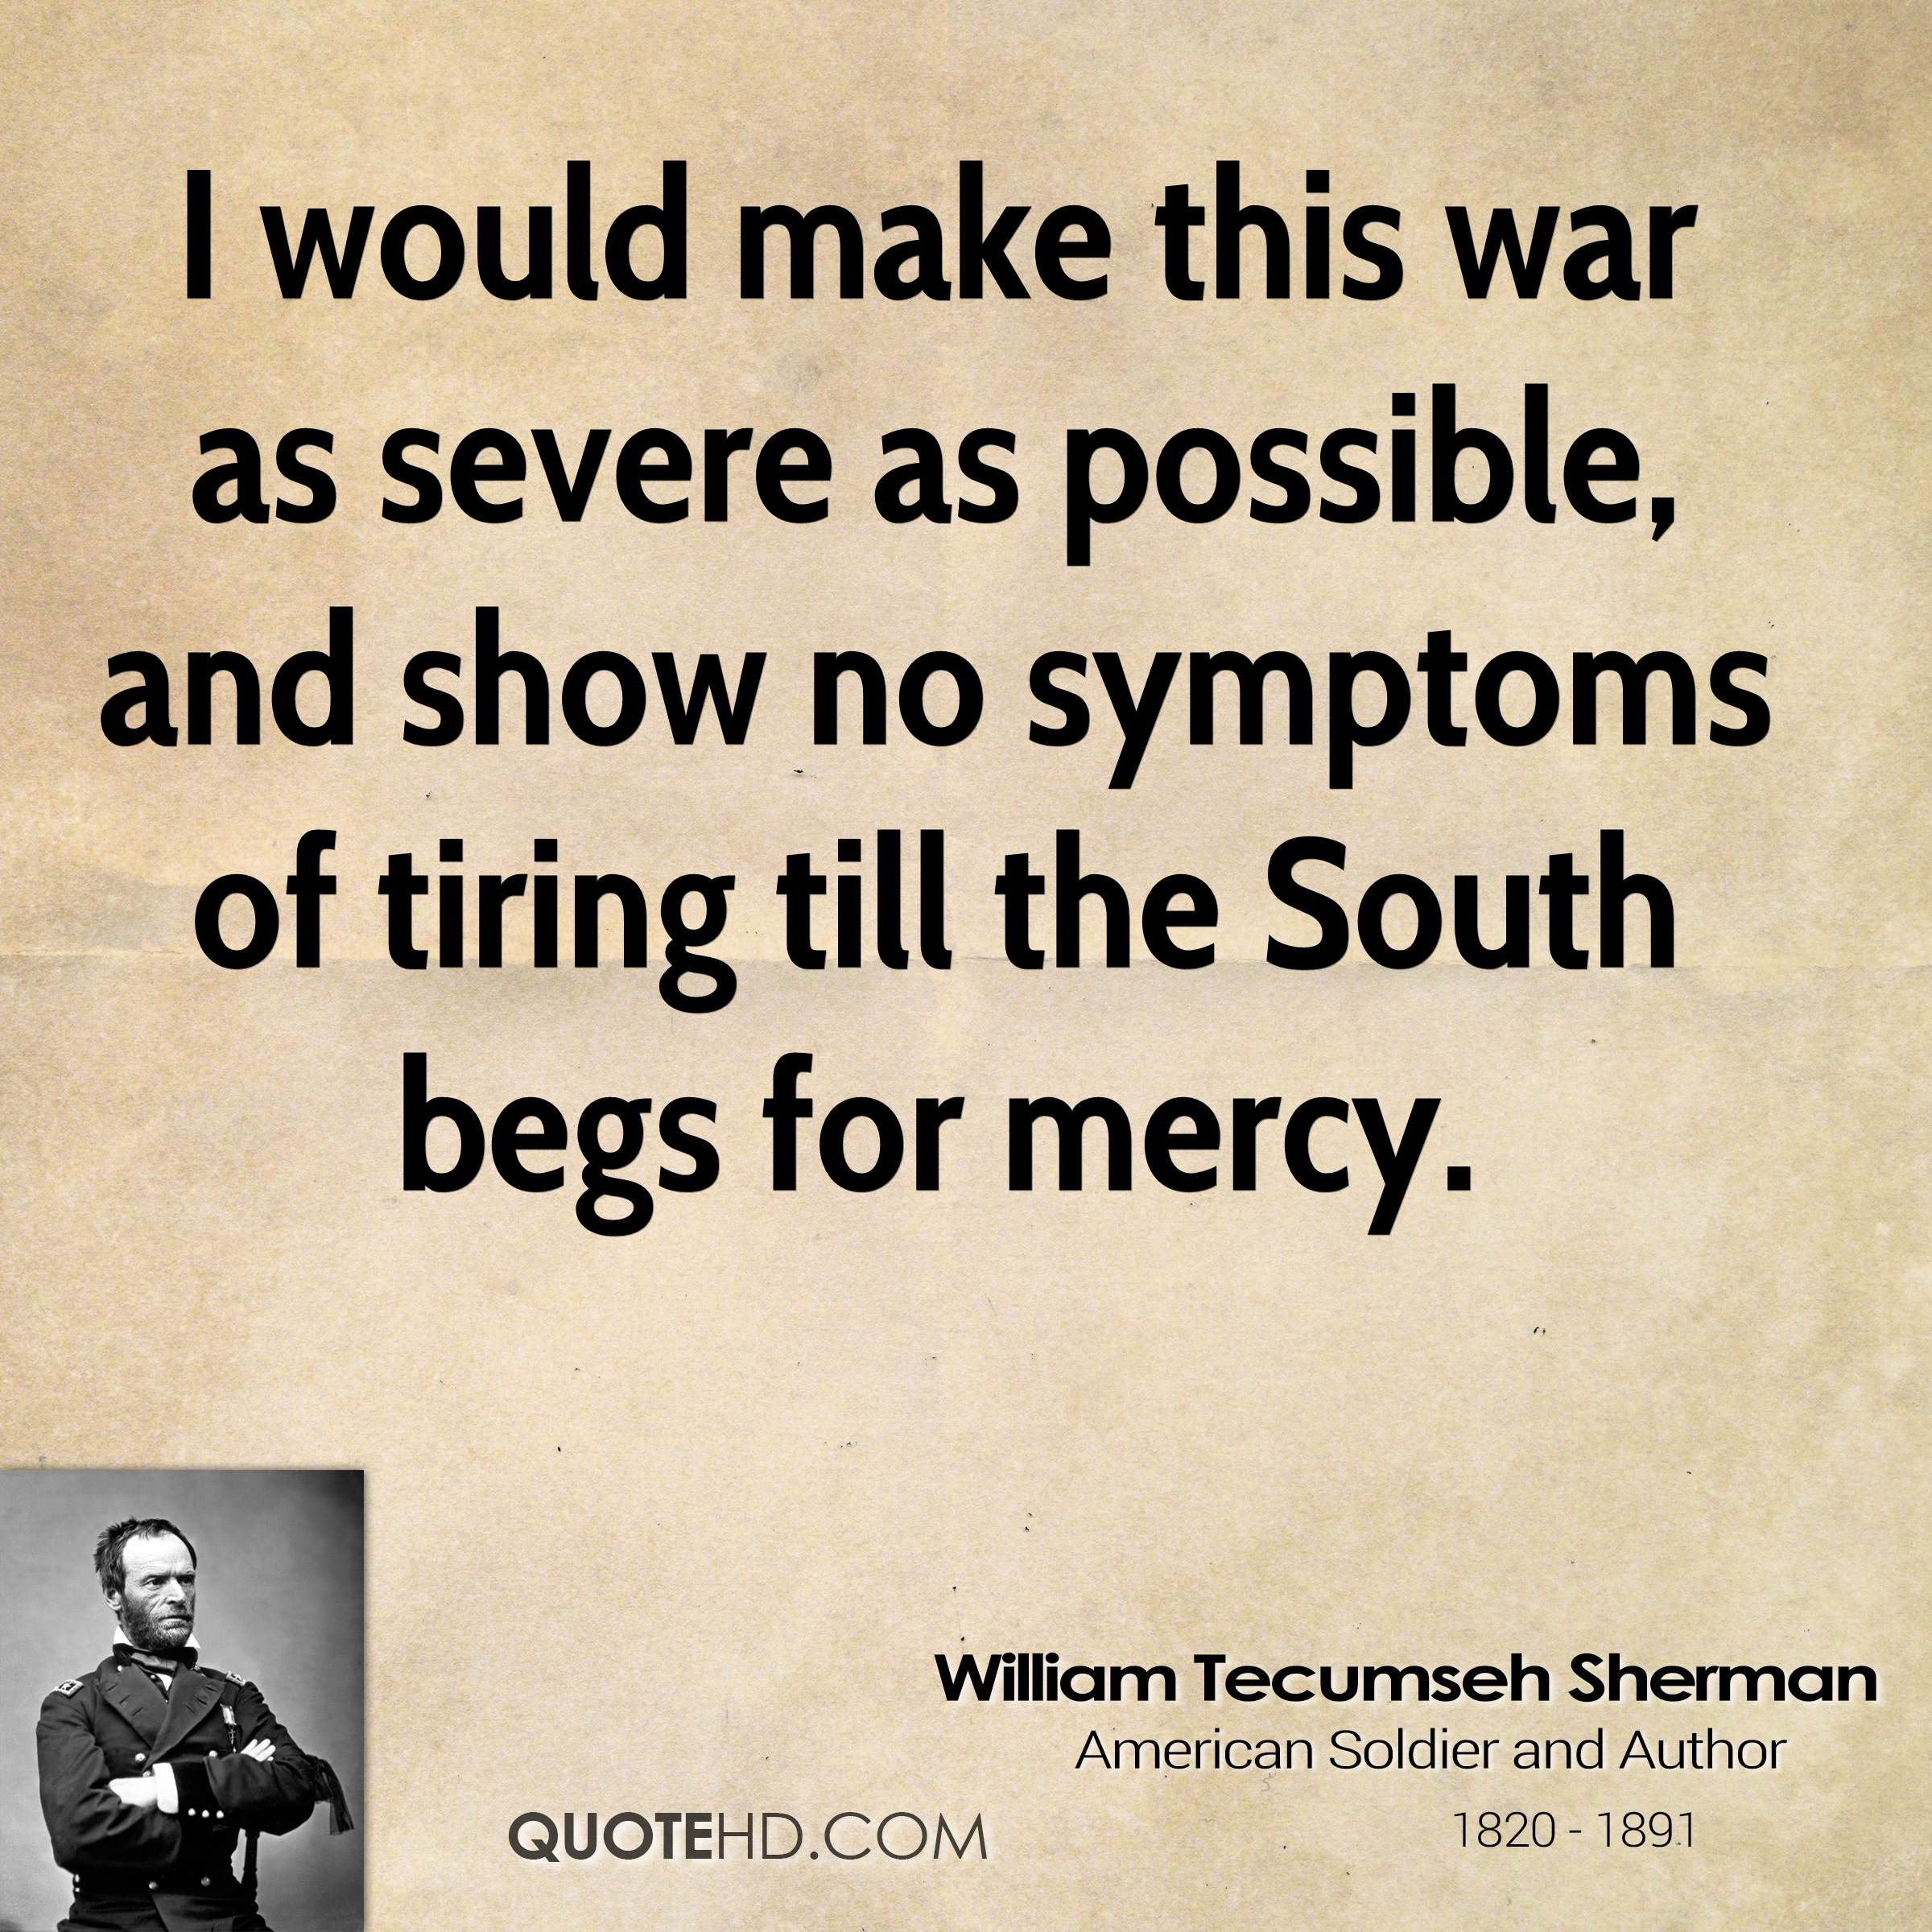 I would make this war as severe as possible, and show no symptoms of tiring till the South begs for mercy.